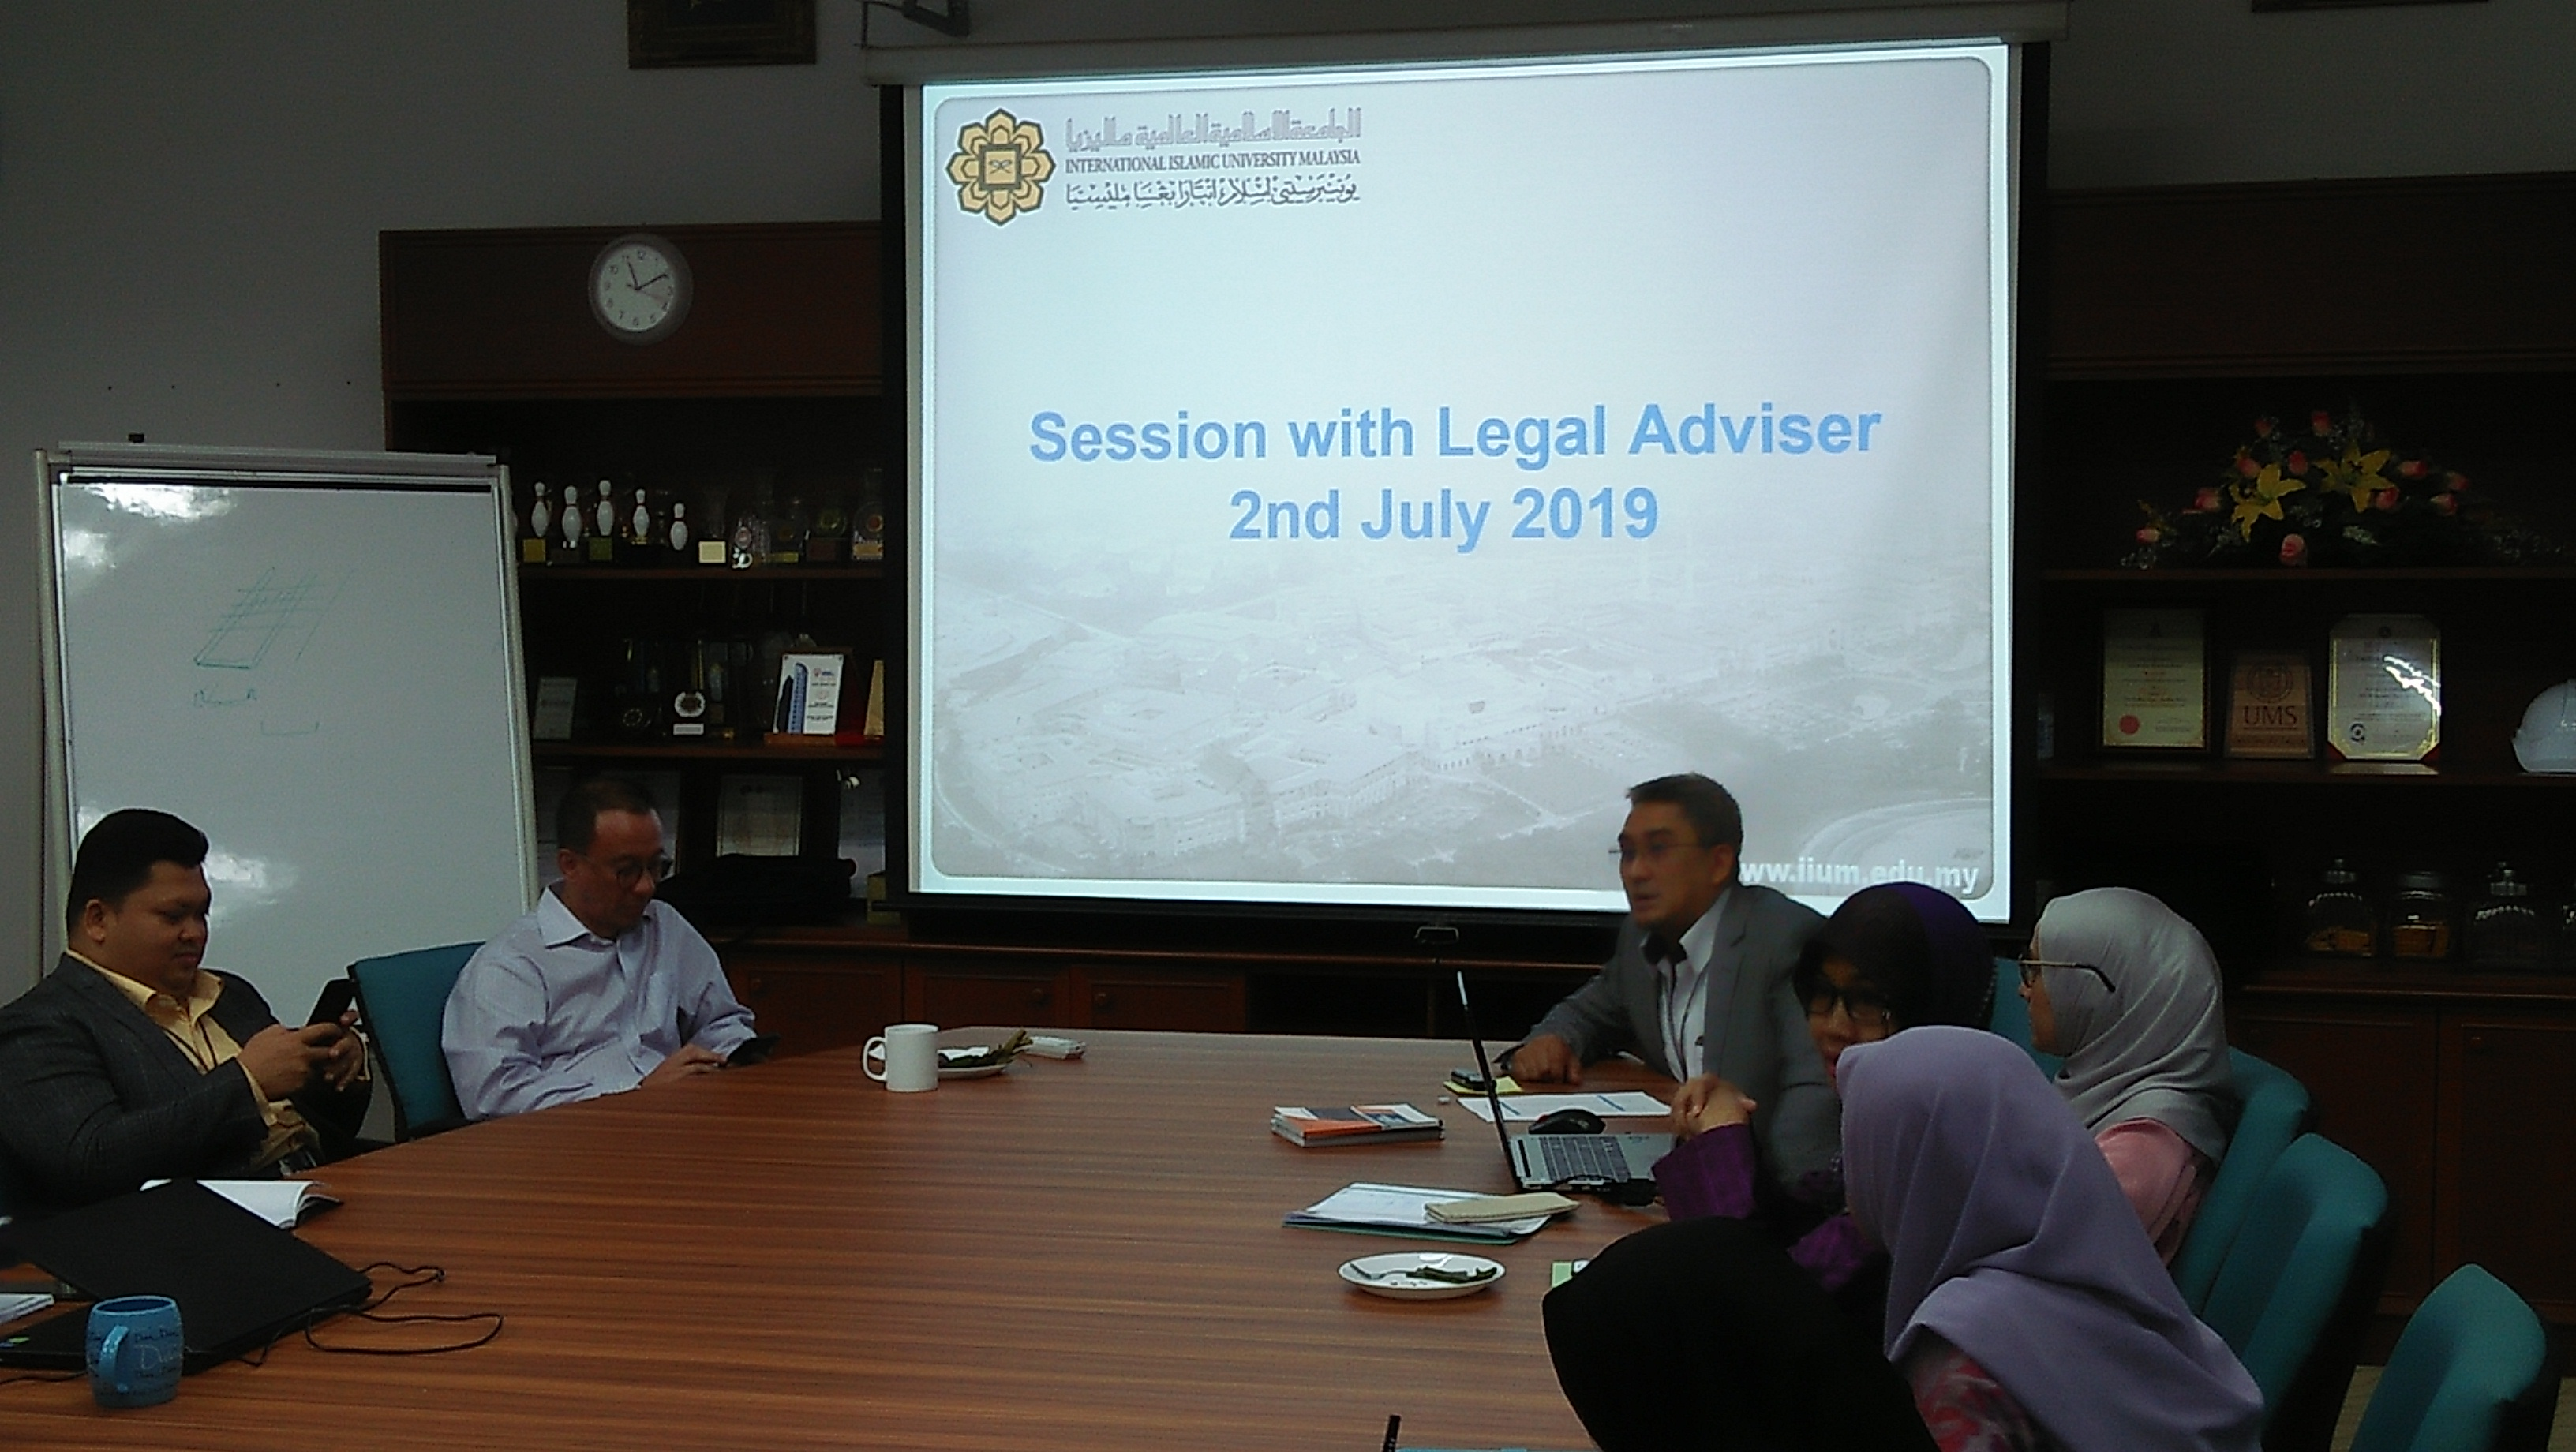 SHARING SESSION WITH THE LEGAL ADVISER